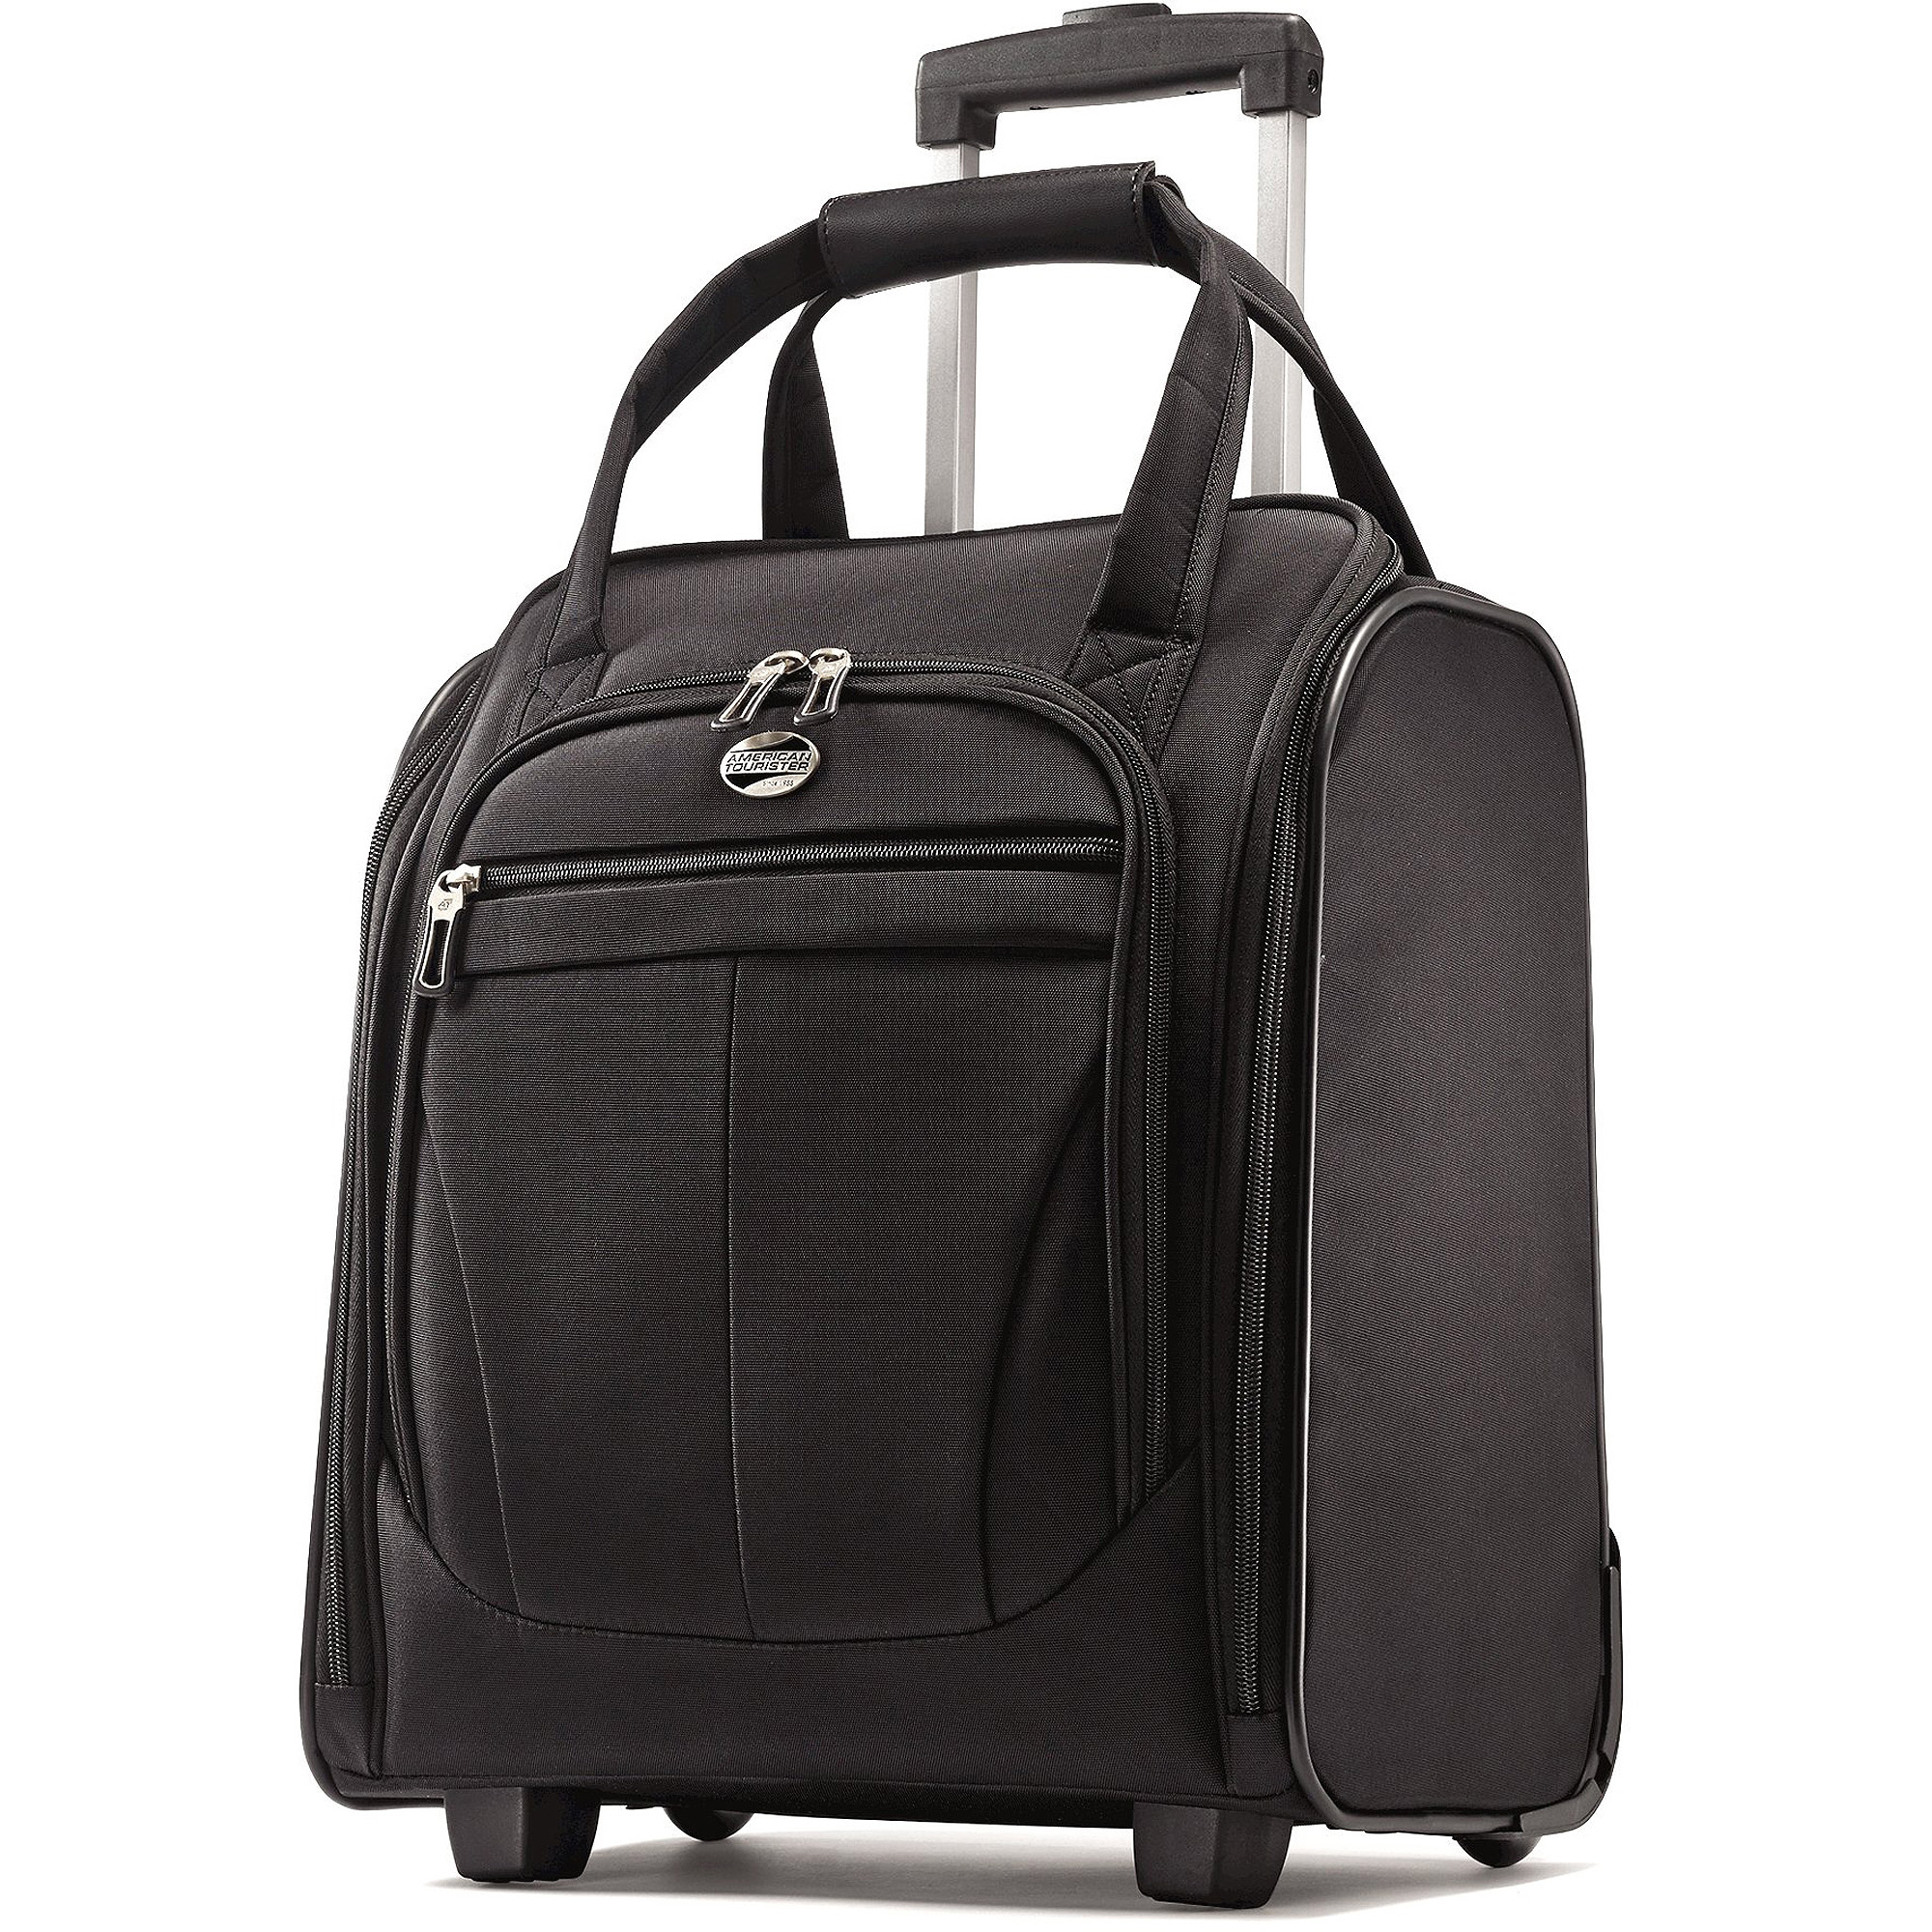 American Tourister Atmosphera II Overnight Tote Image 1 of 2